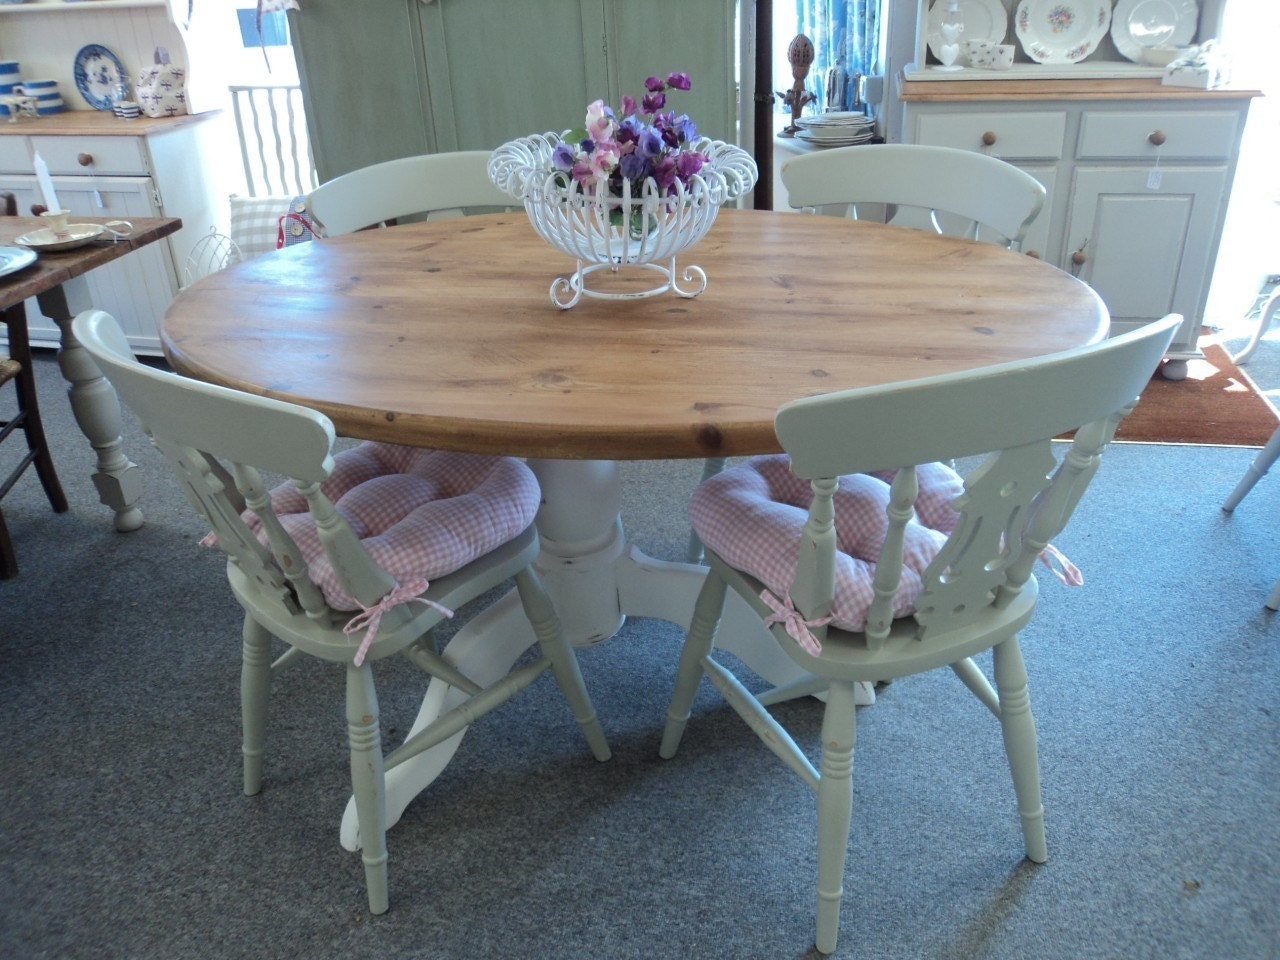 Beautifull Solid Pine Painted Shabby Chic Tip Top Table and 4 Chairs with Seat Pads